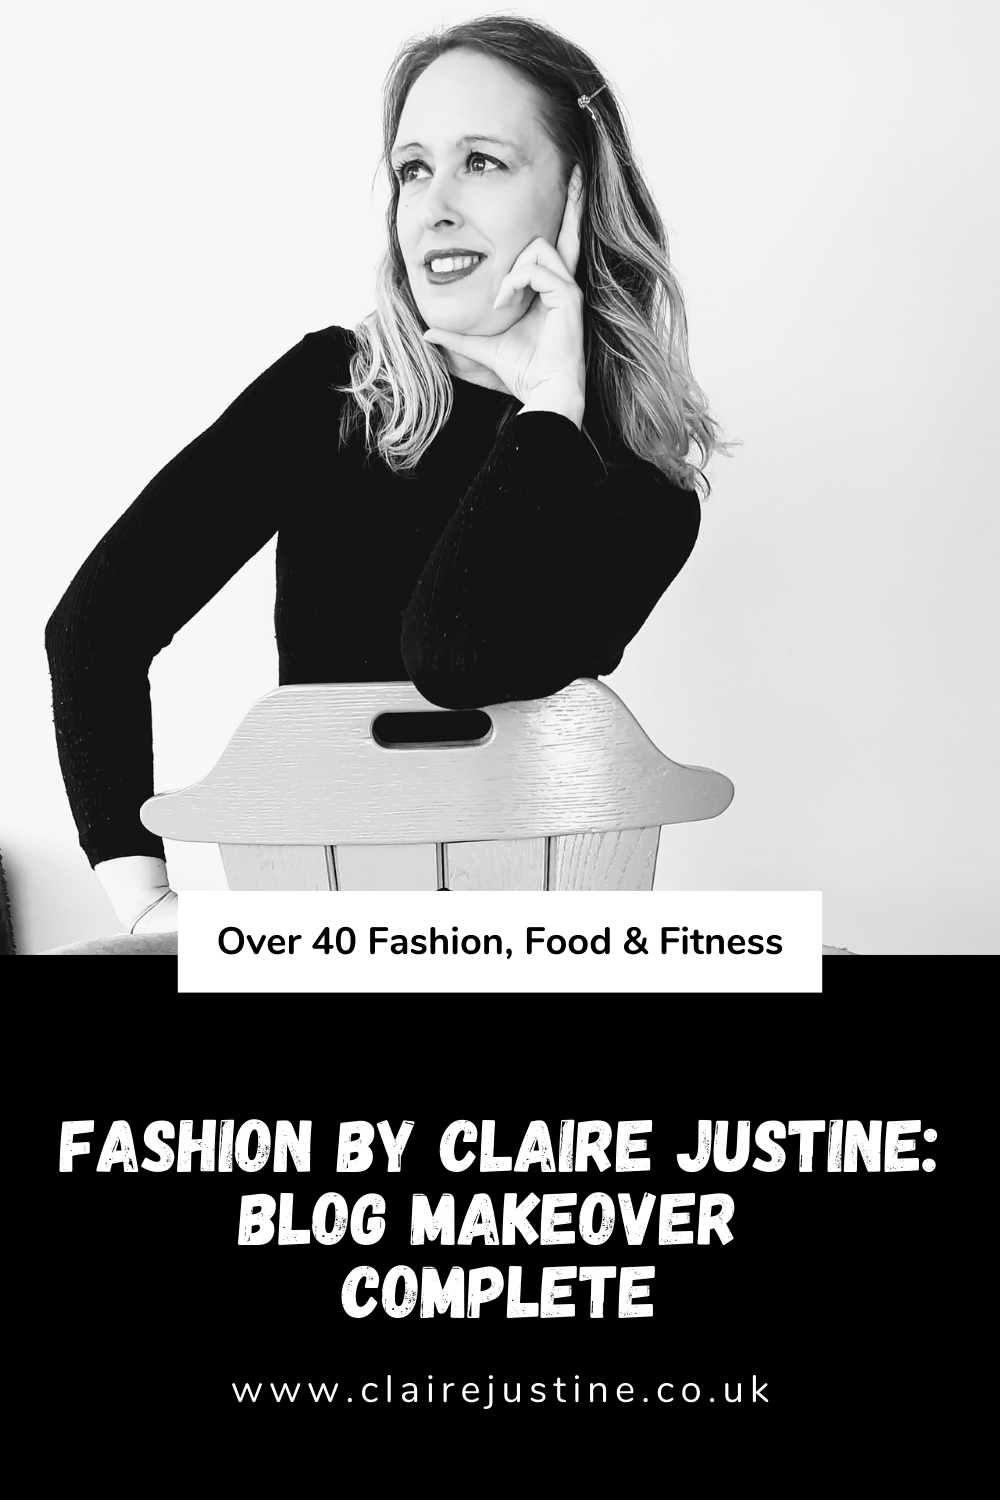 Fashion By Claire Justine: Blog Makeover Complete.